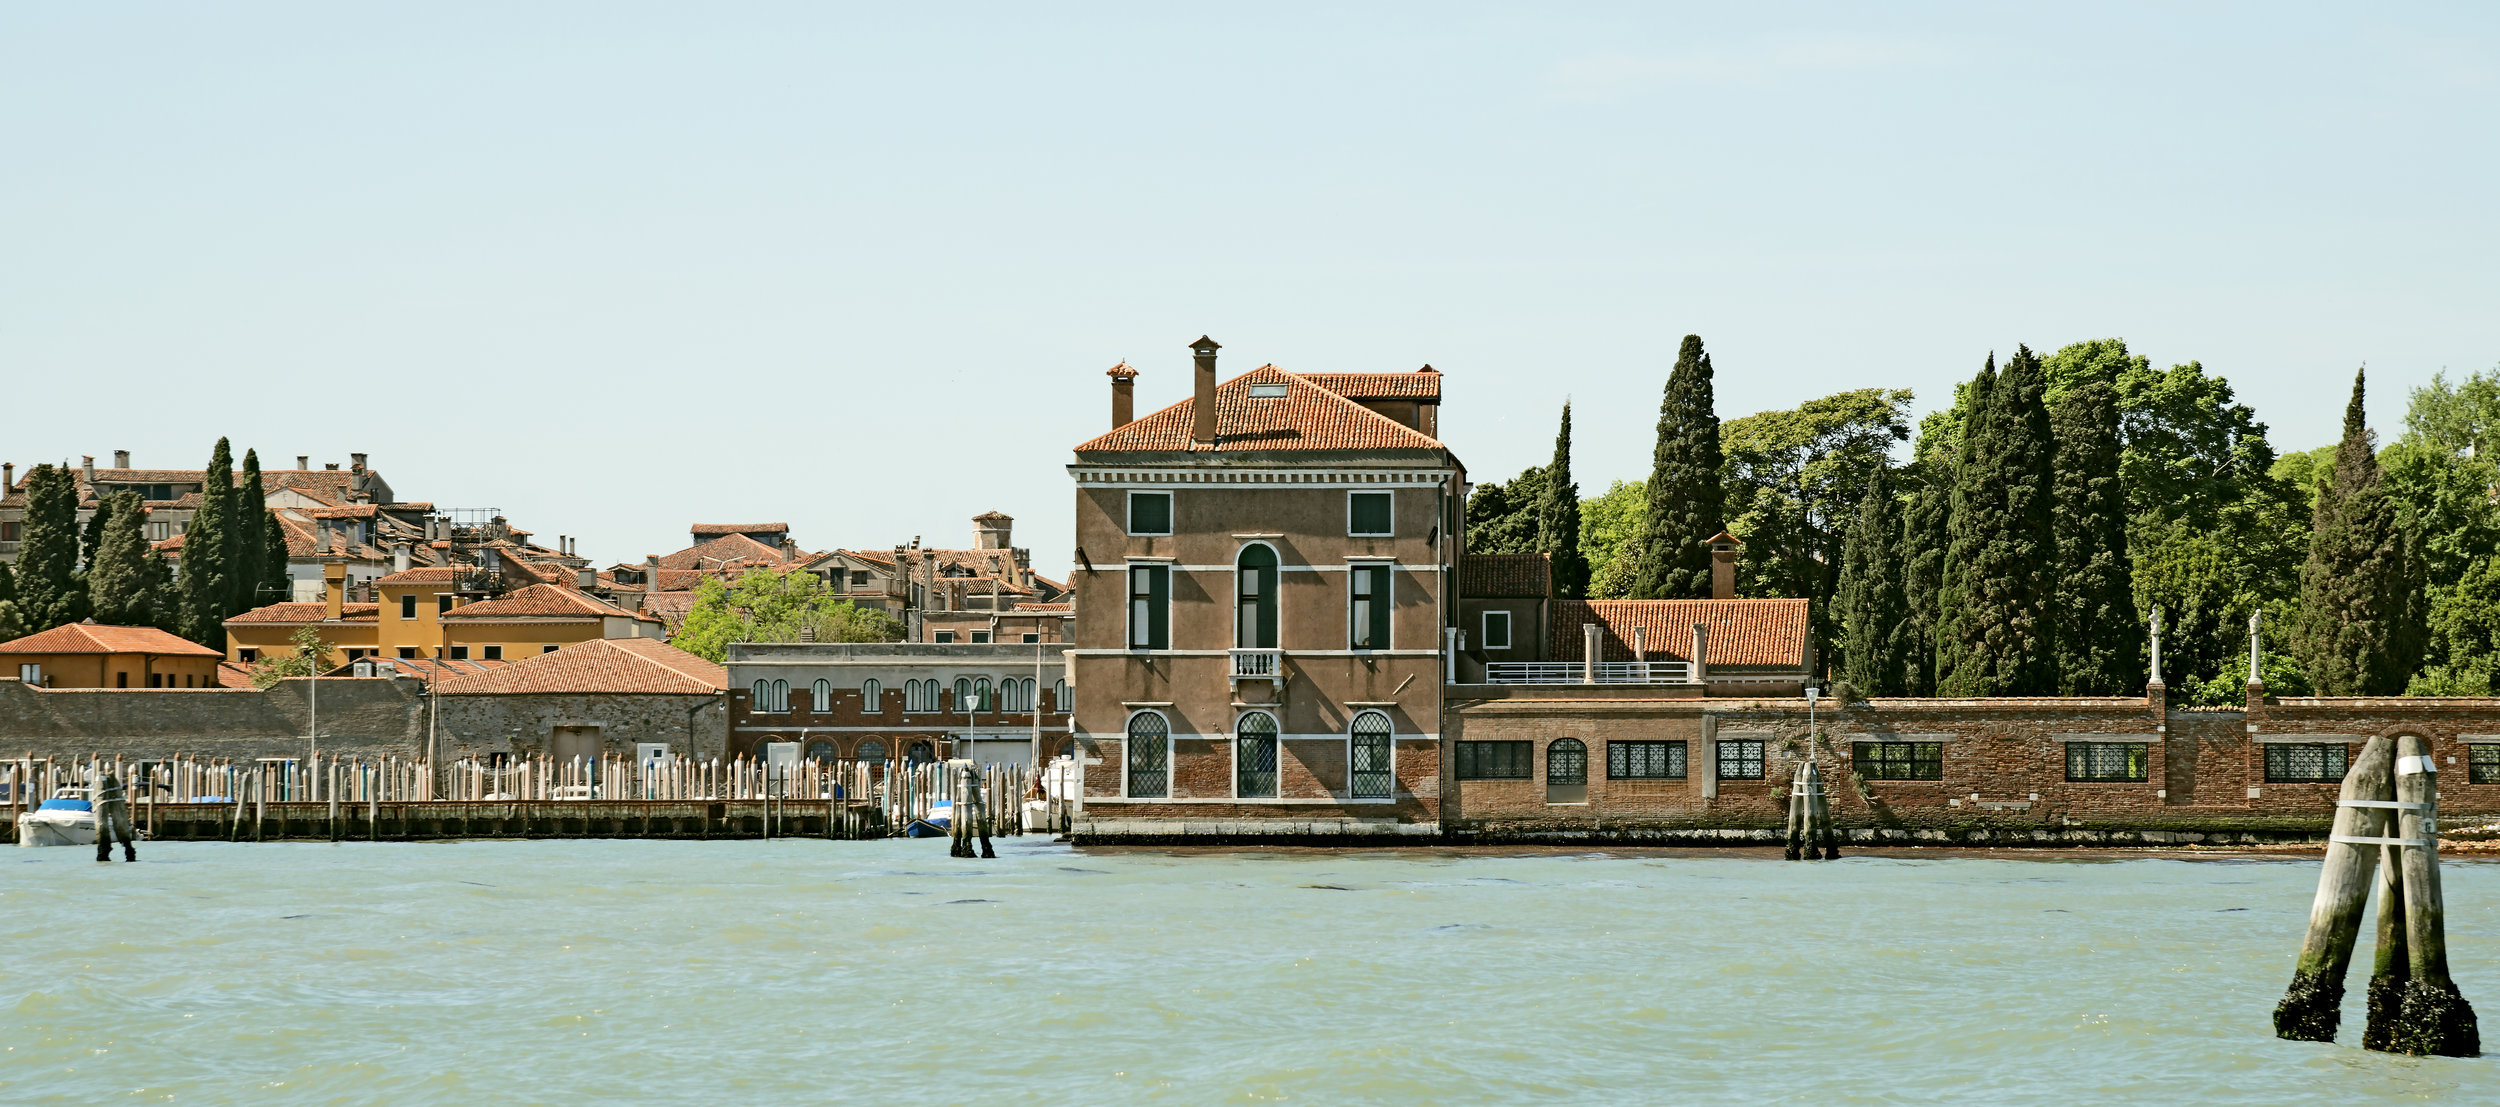 The Casino degli Spiriti, as seen from the water, Venice, Italy